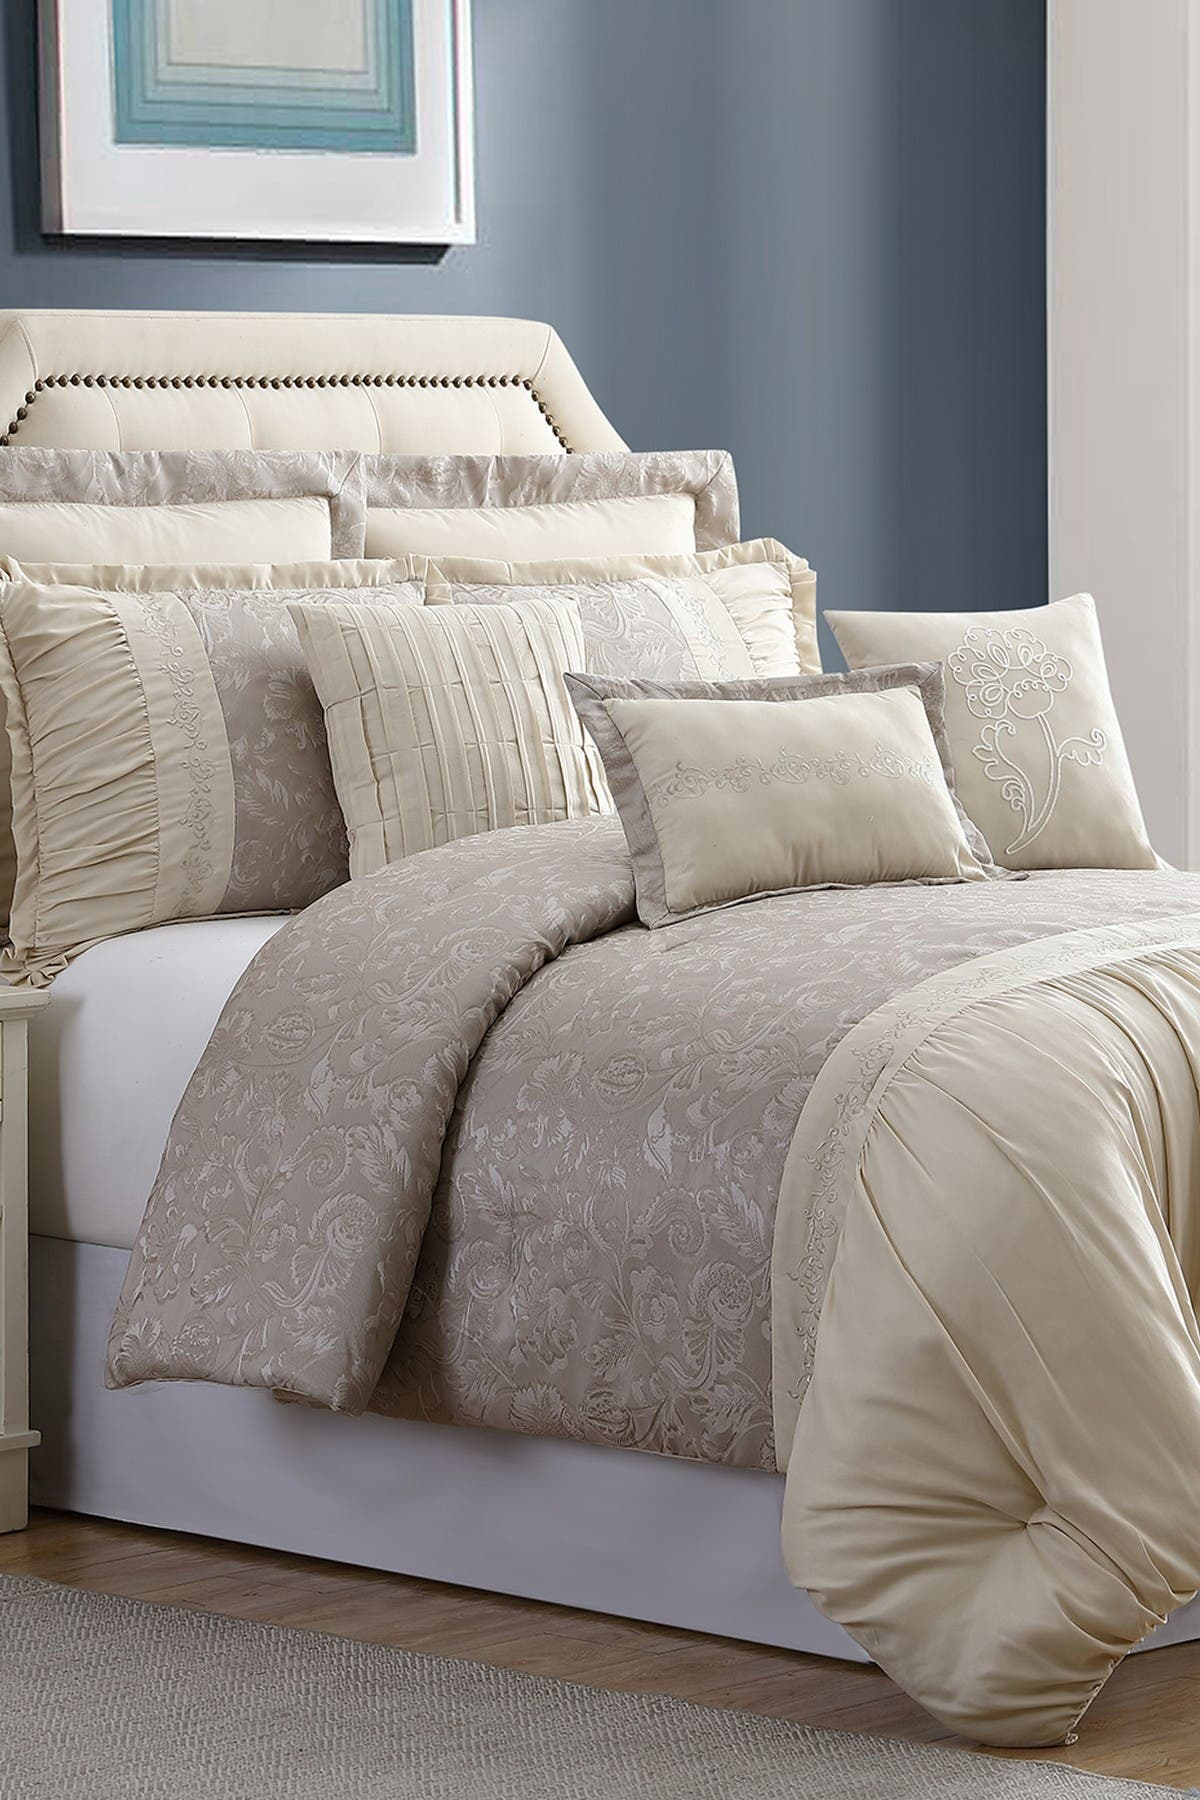 Image of Modern Threads Queen Jardin Jacquard Comforter Set - Tan